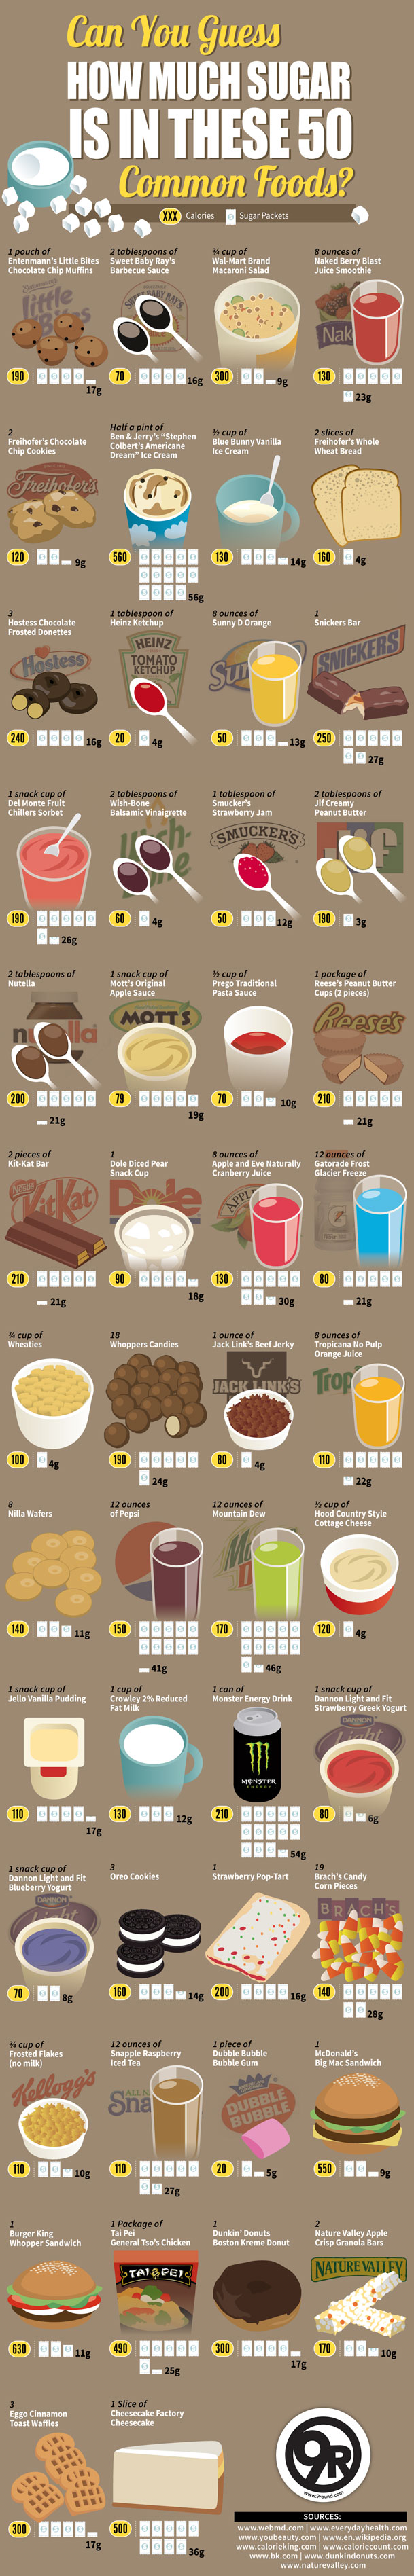 sugar-common-foods